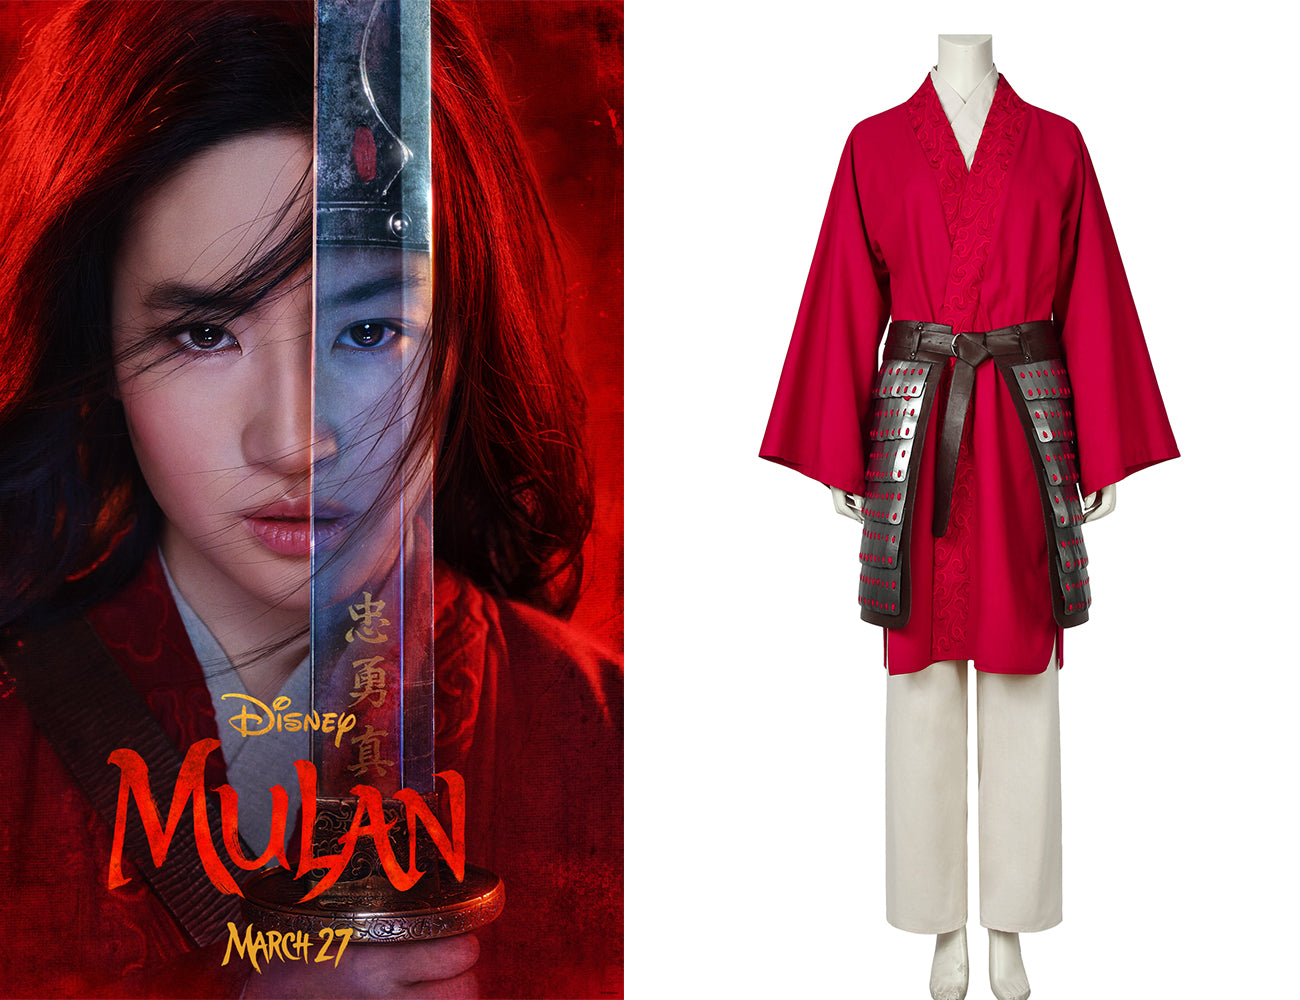 Cosplayflying Buy Disney Princess Mulan 2020 Movie Cosplay Costume Inner Shirt Pants Robe Belt Armor Accessories For Halloween Carnival